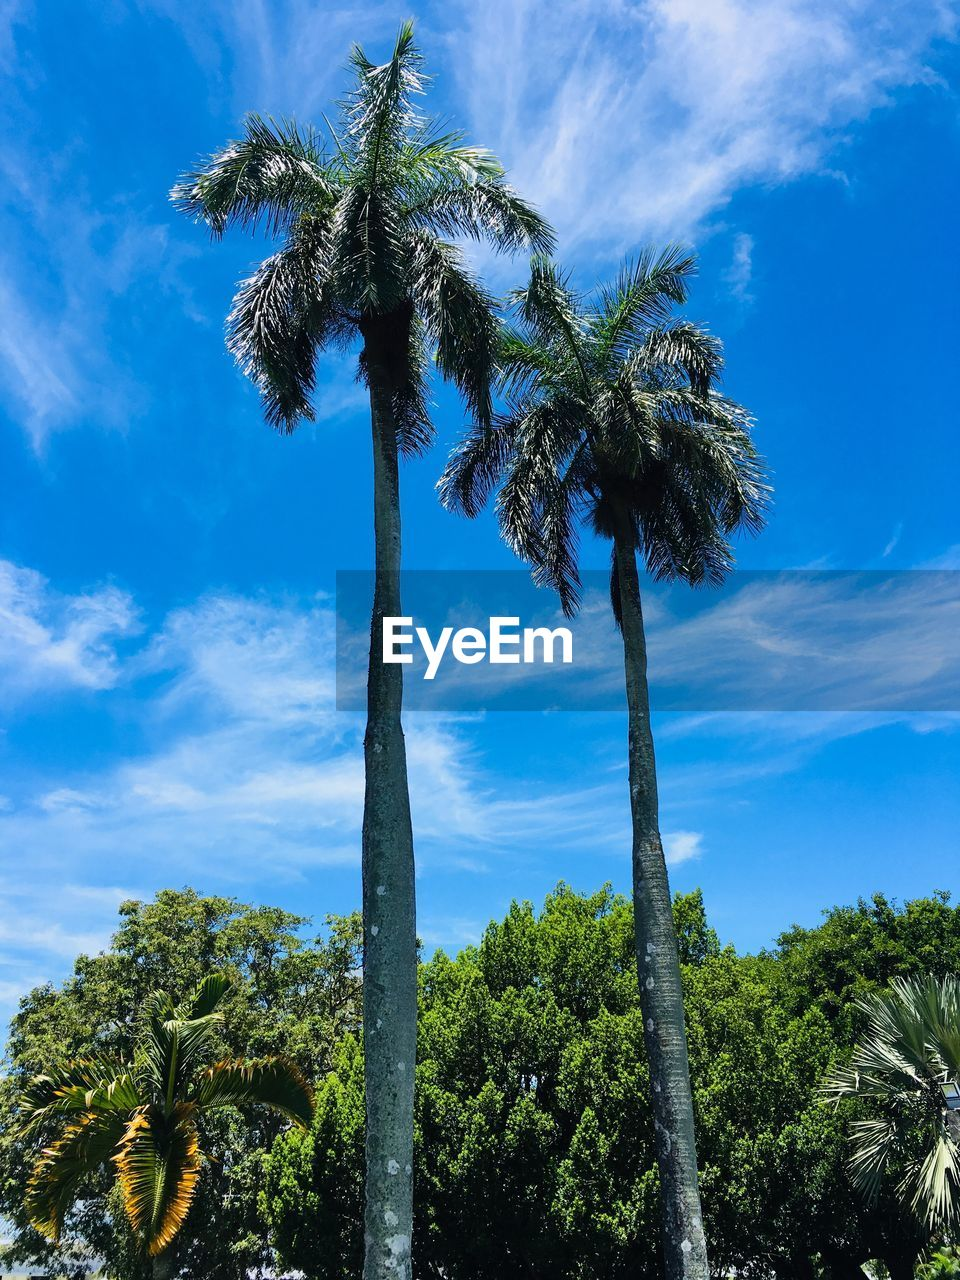 plant, tree, sky, tropical climate, cloud - sky, growth, palm tree, beauty in nature, low angle view, nature, green color, tree trunk, trunk, no people, tall - high, day, sunlight, tranquility, blue, outdoors, coconut palm tree, tropical tree